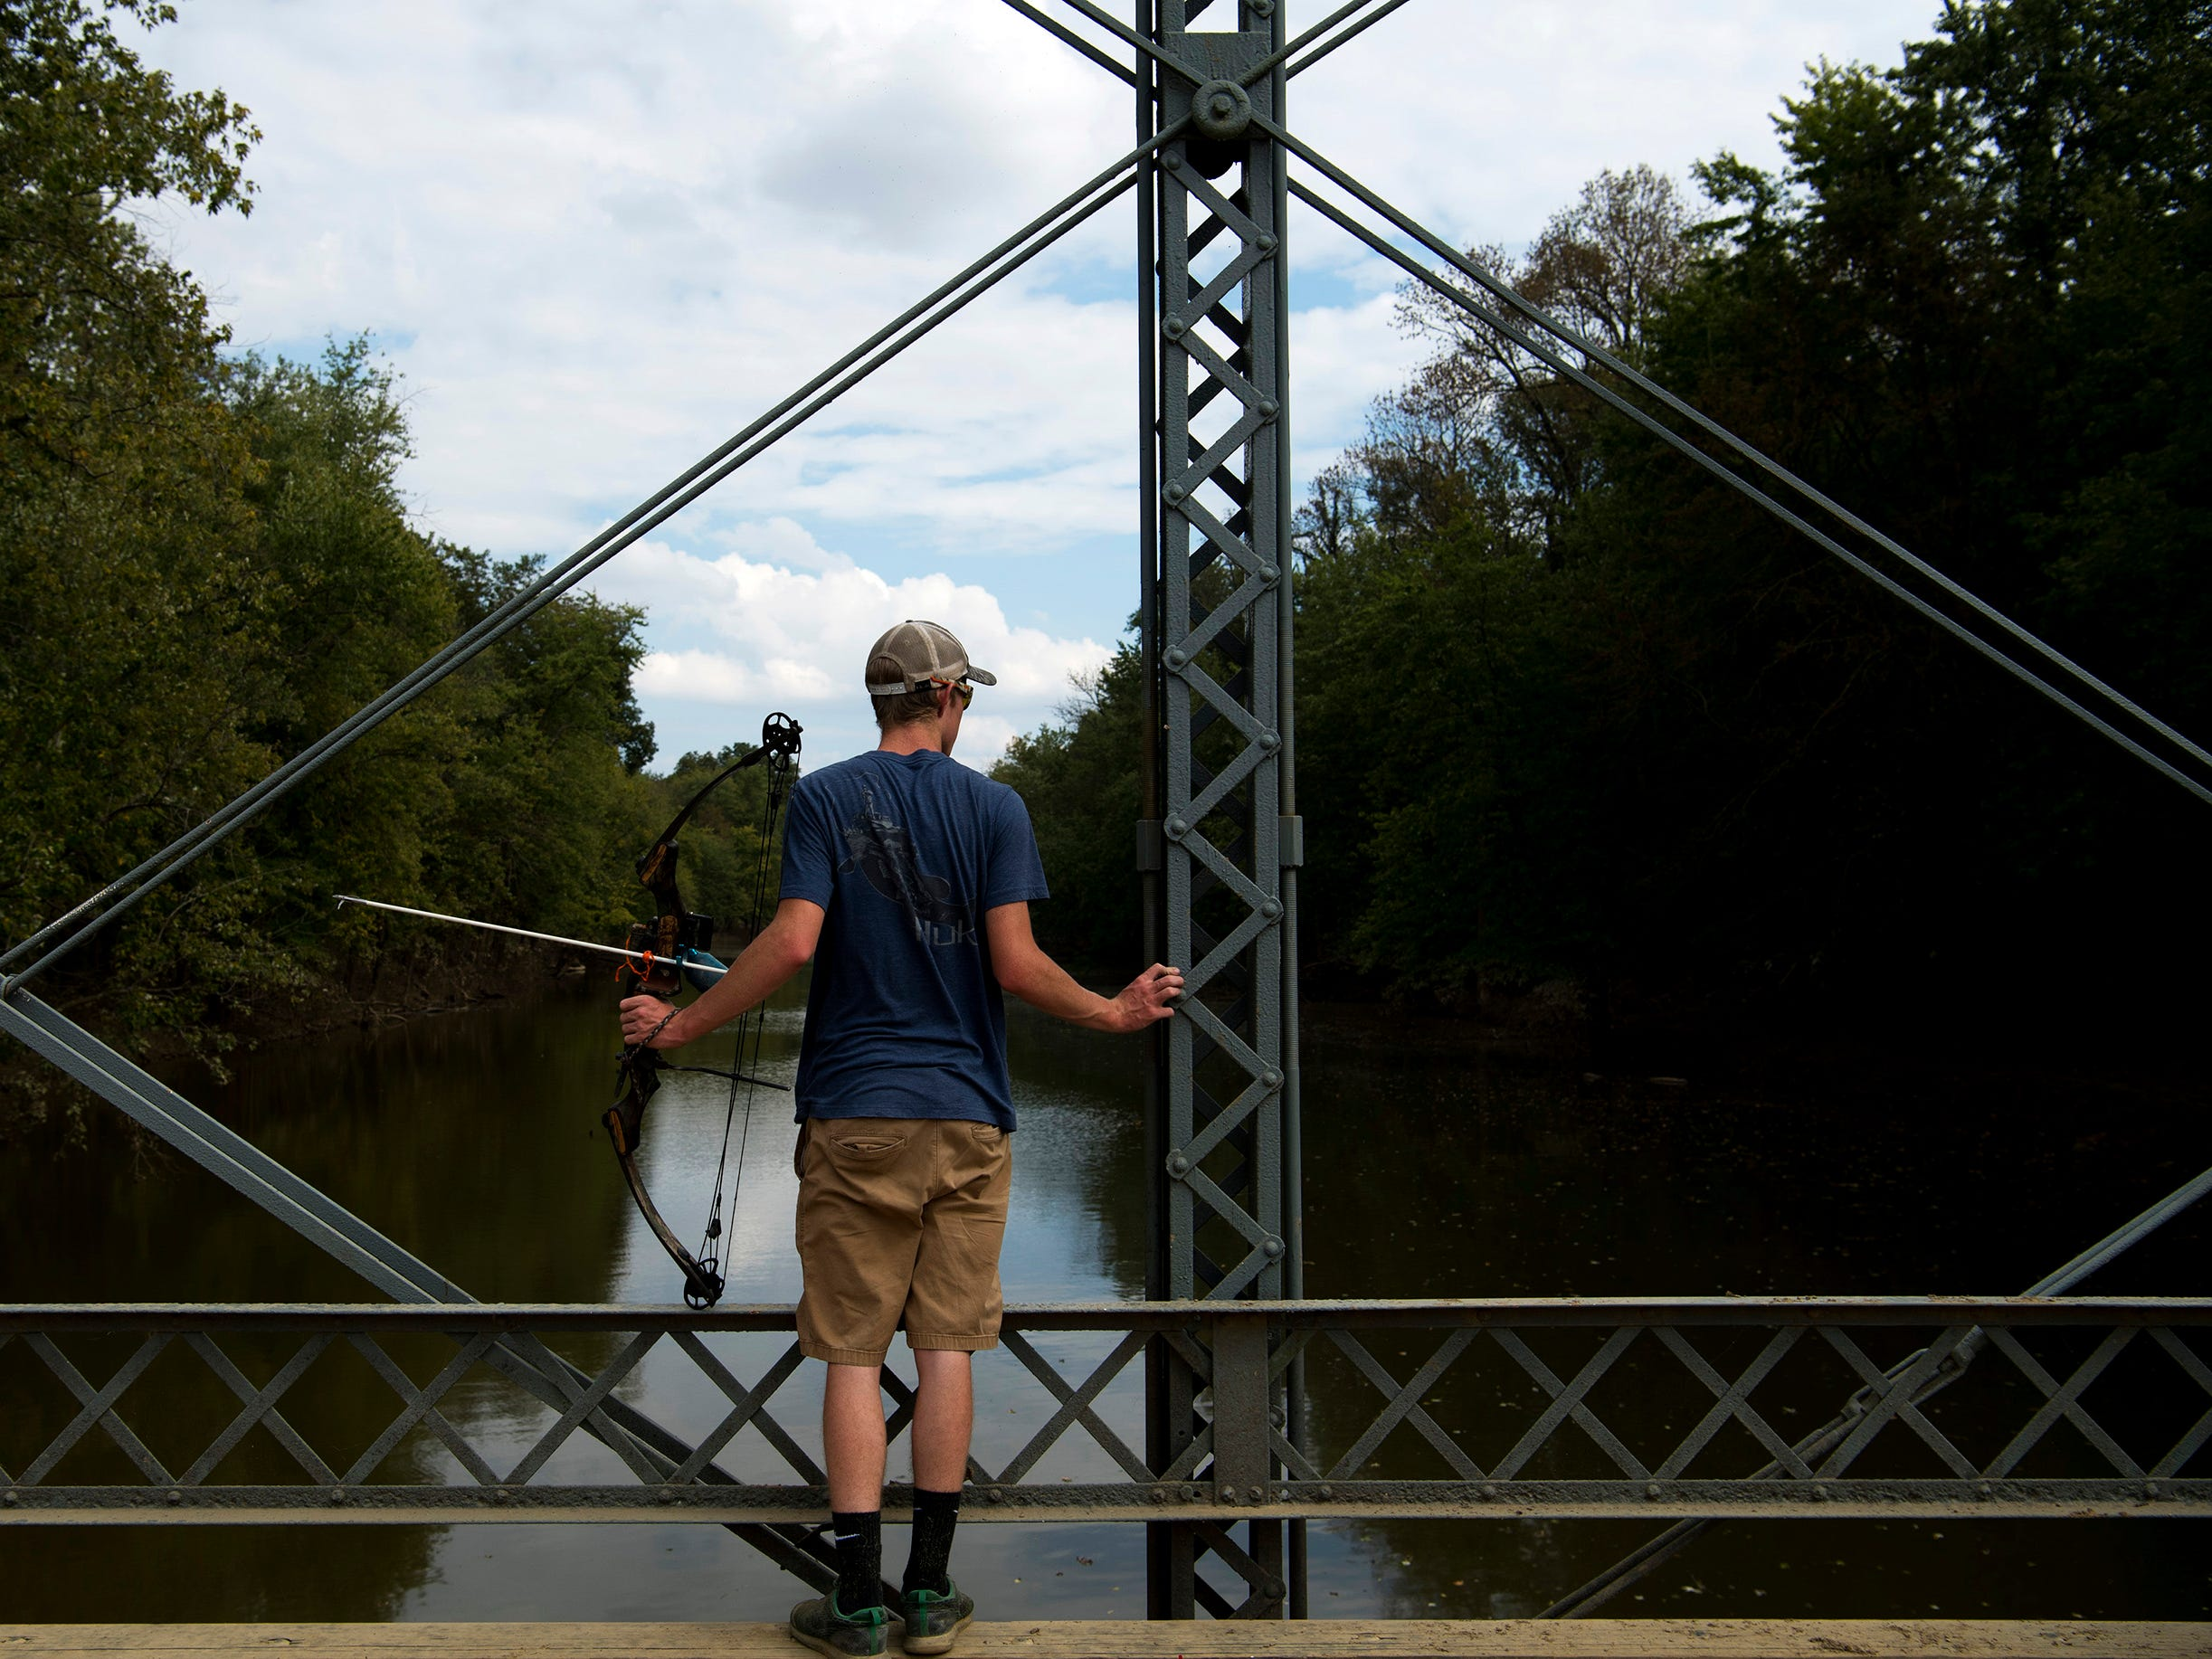 Jarrett Sandage, 17, a Boonville High School student, searches for carp with his bow and arrow above Little Pigeon Creek near Yankeetown, Ind., Monday afternoon, Oct. 8, 2018. The bridge is a hot spot for local bow fishermen recently had about 30 archers perched atop the wood and steel structure.